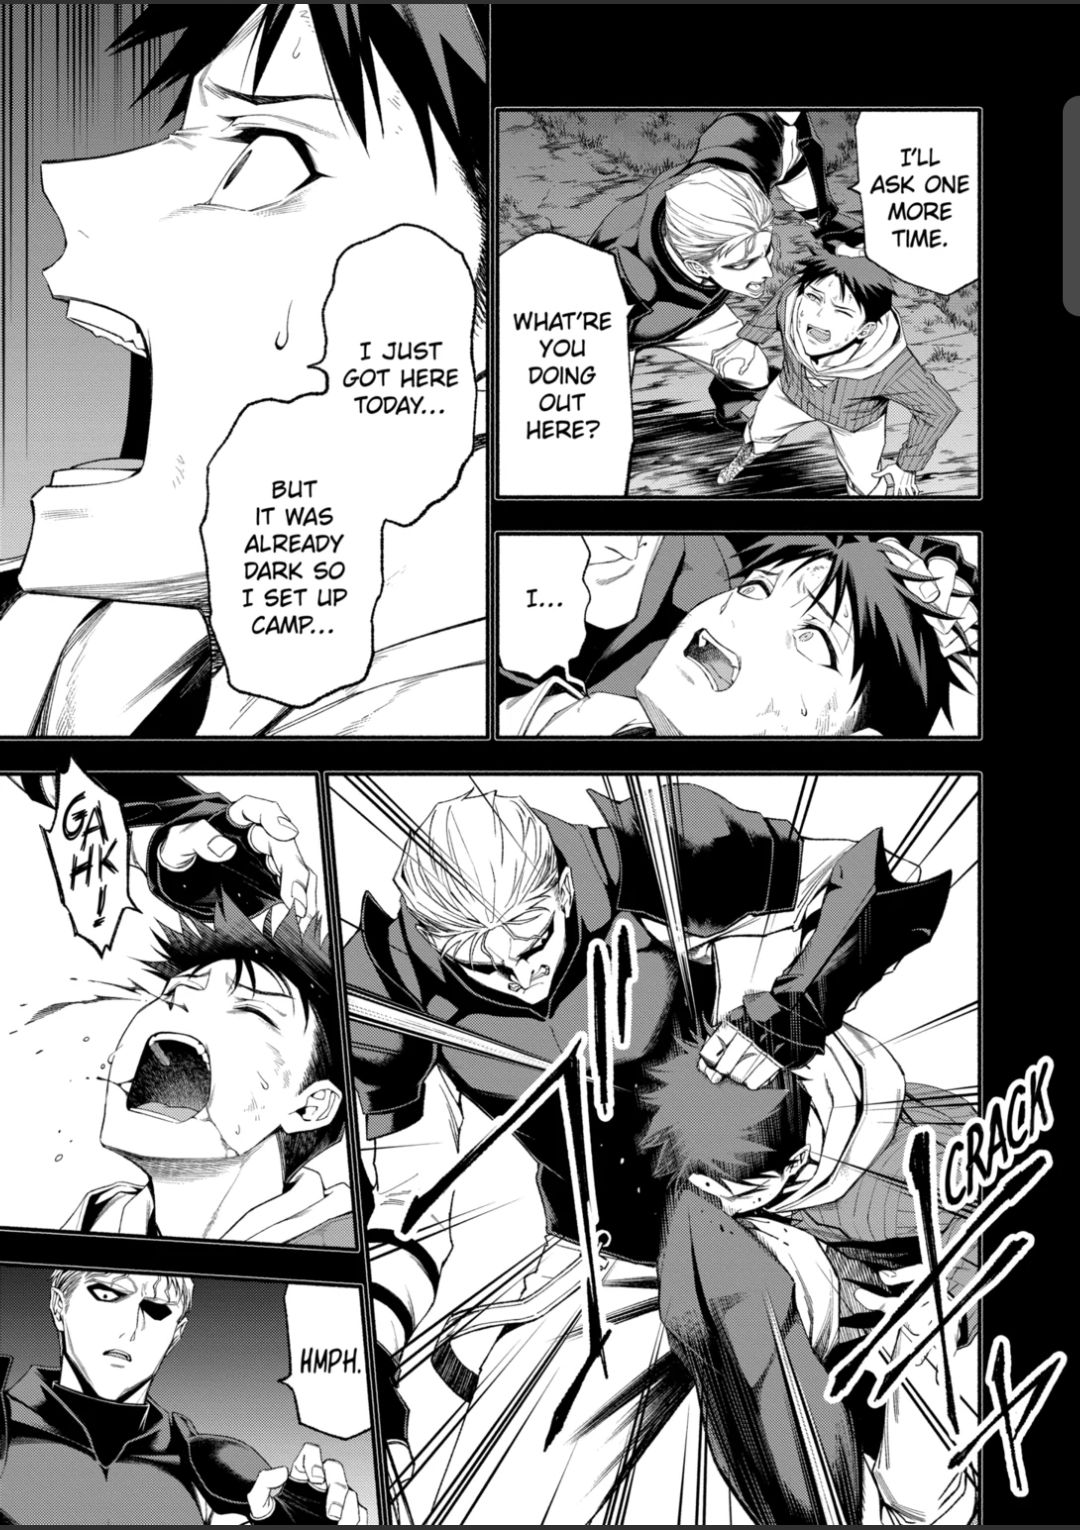 After Being Reborn, i Became The Strongest to Save Everyone - chapter 40 - #3